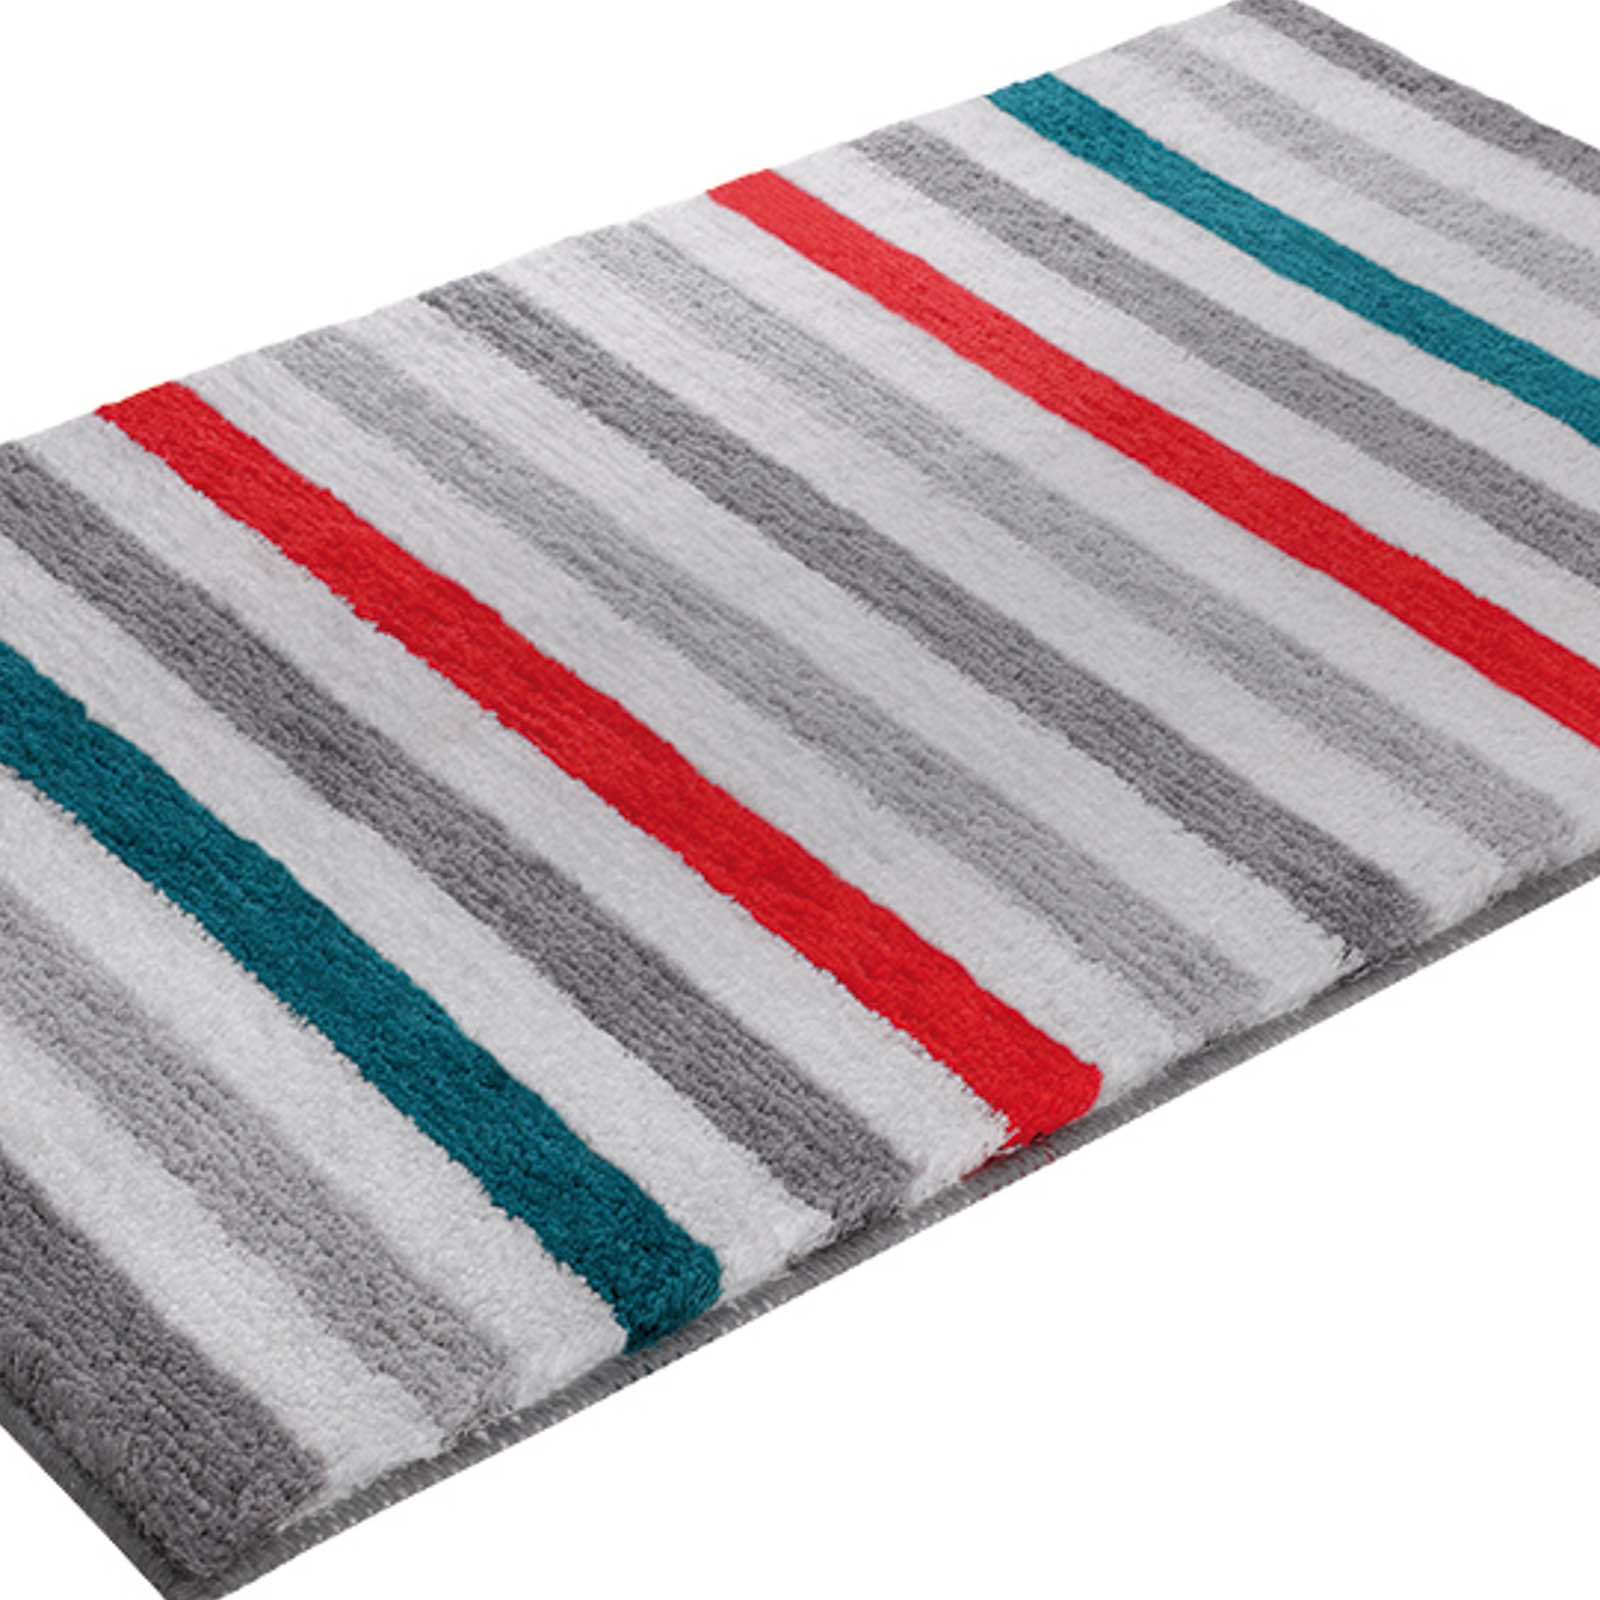 Line Stripe Bath Mats 2373 06 in Grey, Orange and Turquoise